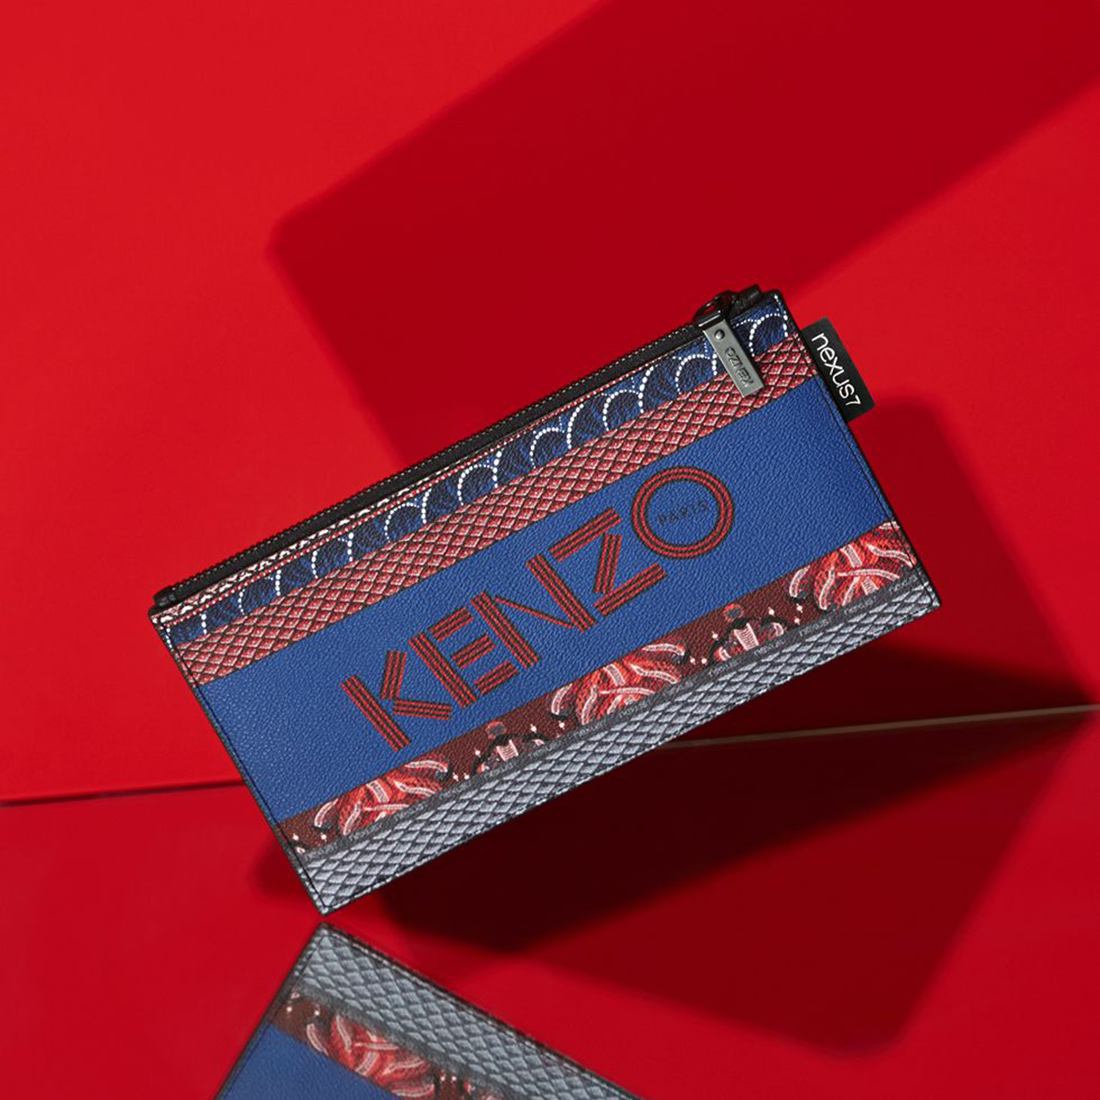 Attention all android owners! Did you know that Kenzo specially designed a case ($115) for the Nexus 7?